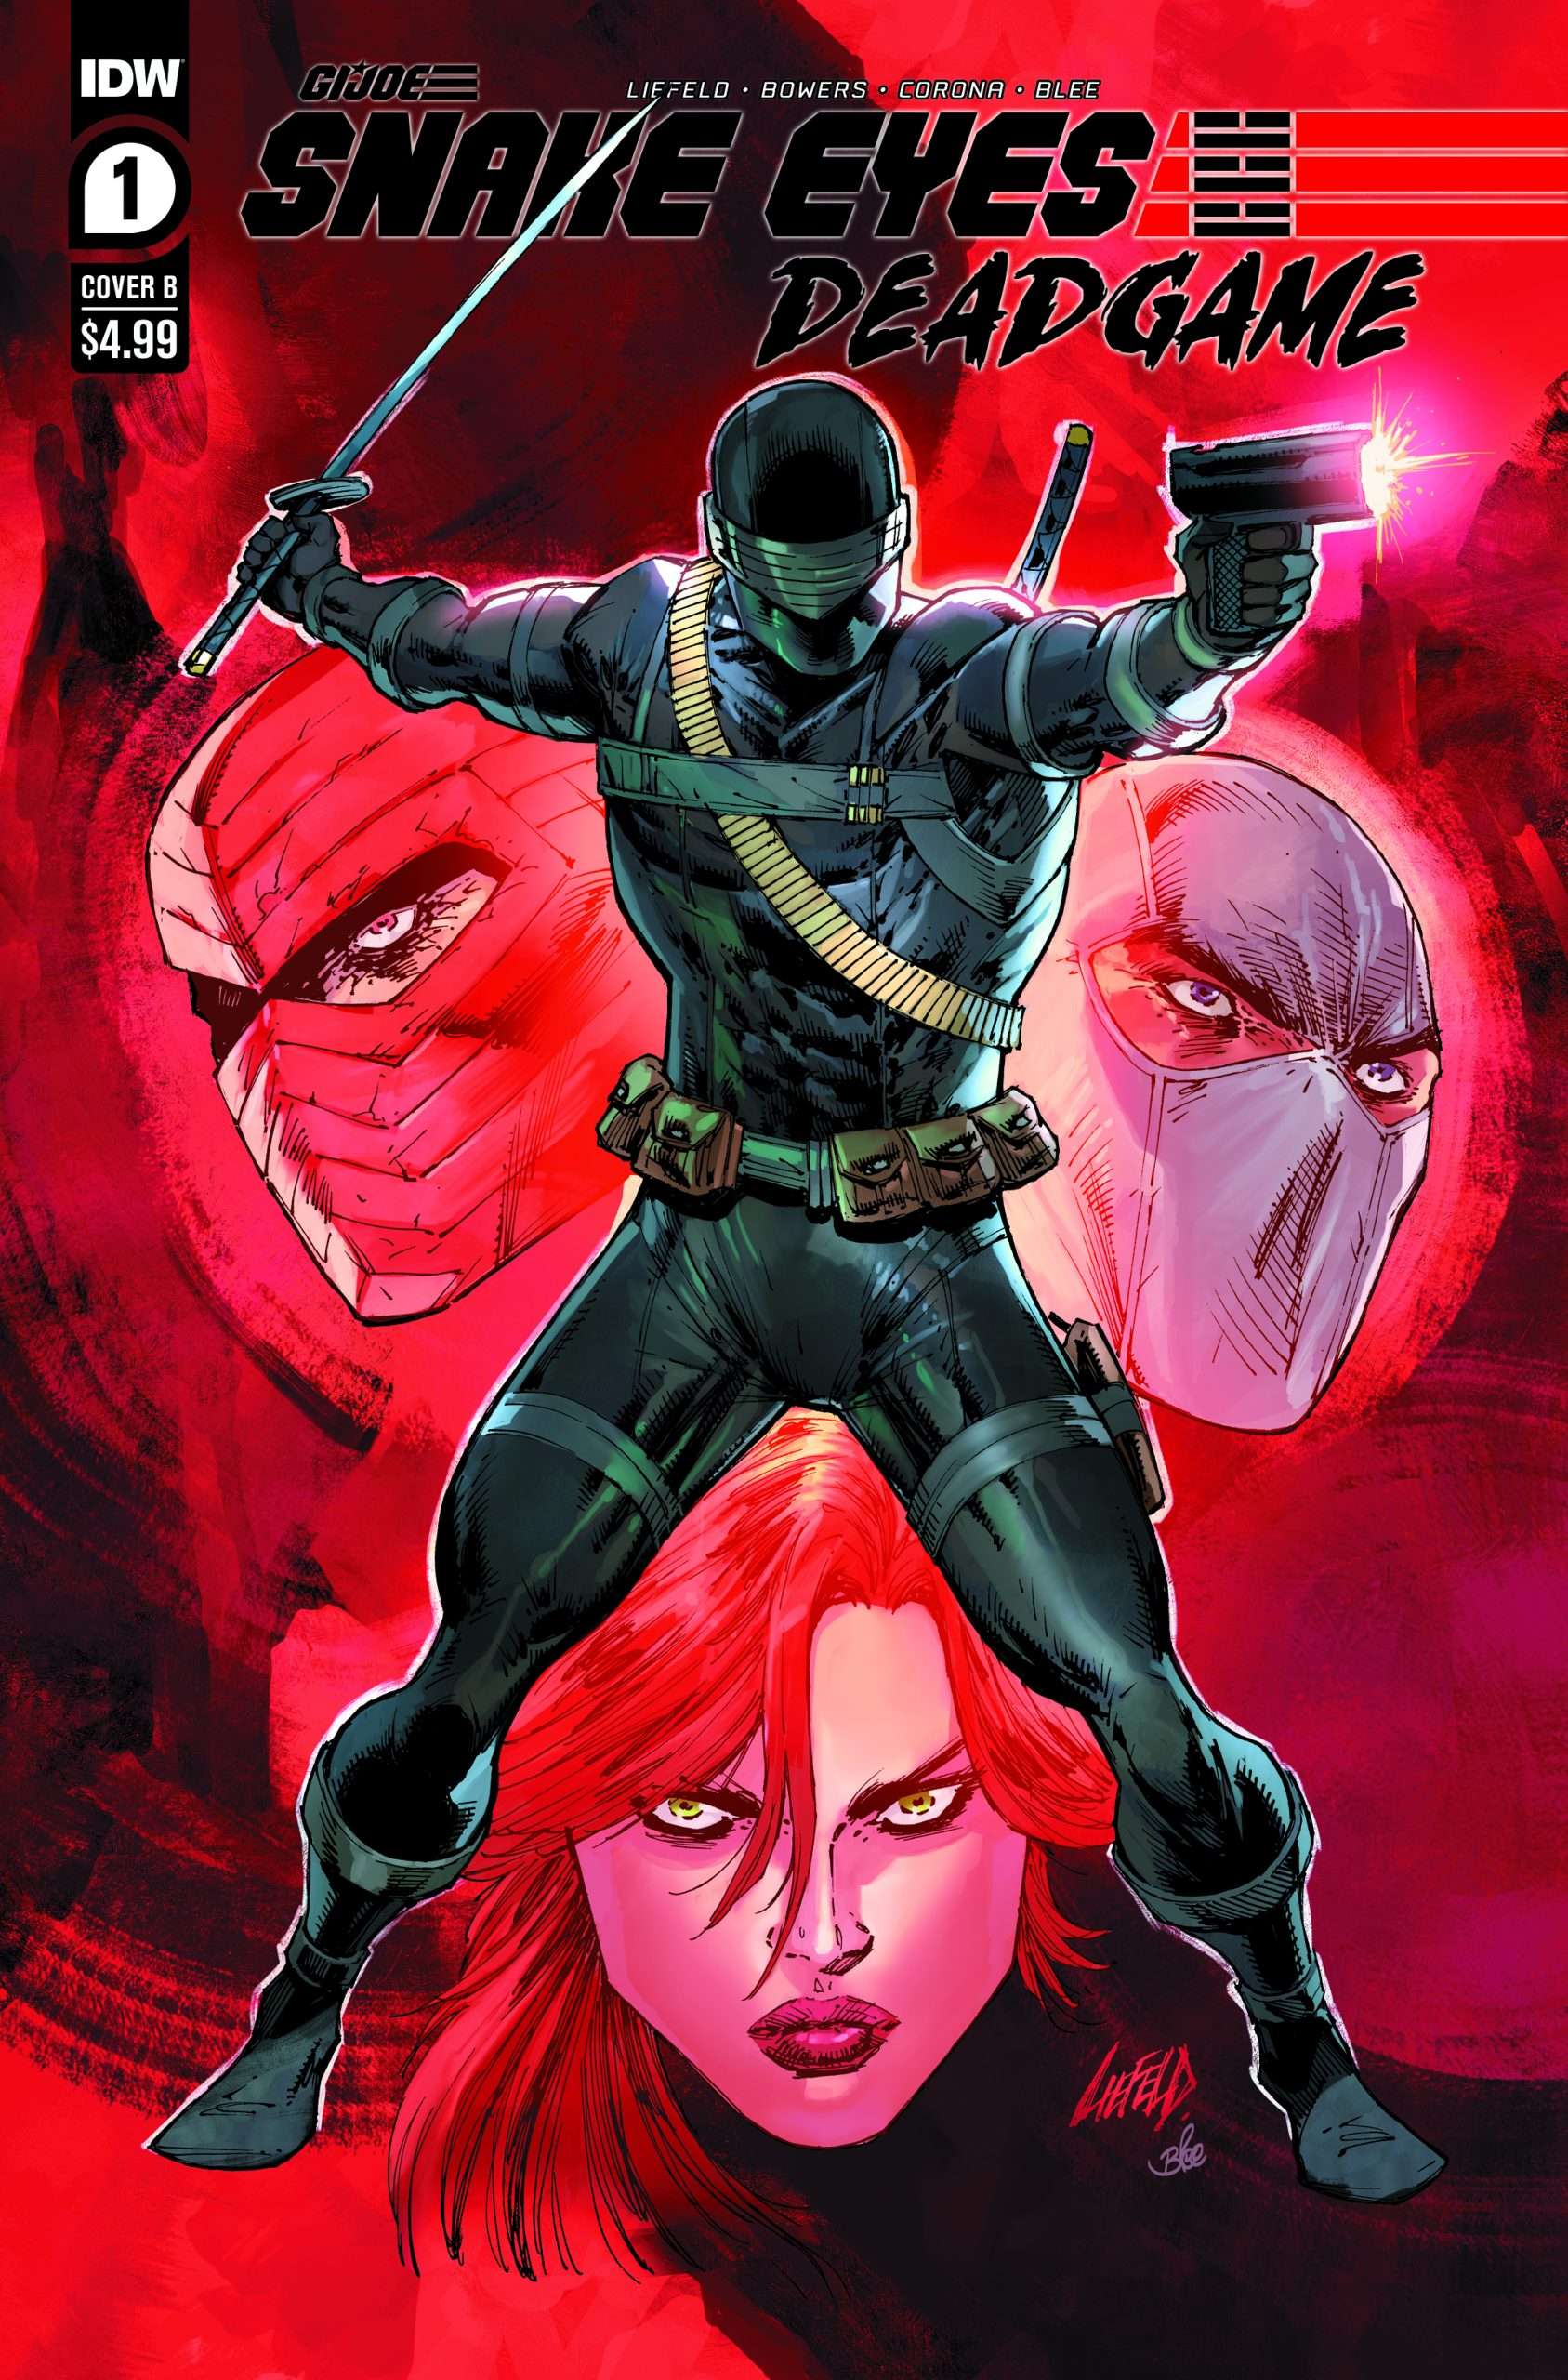 Rob Liefeld's Snakes Eyes Deadgame #1B Cover